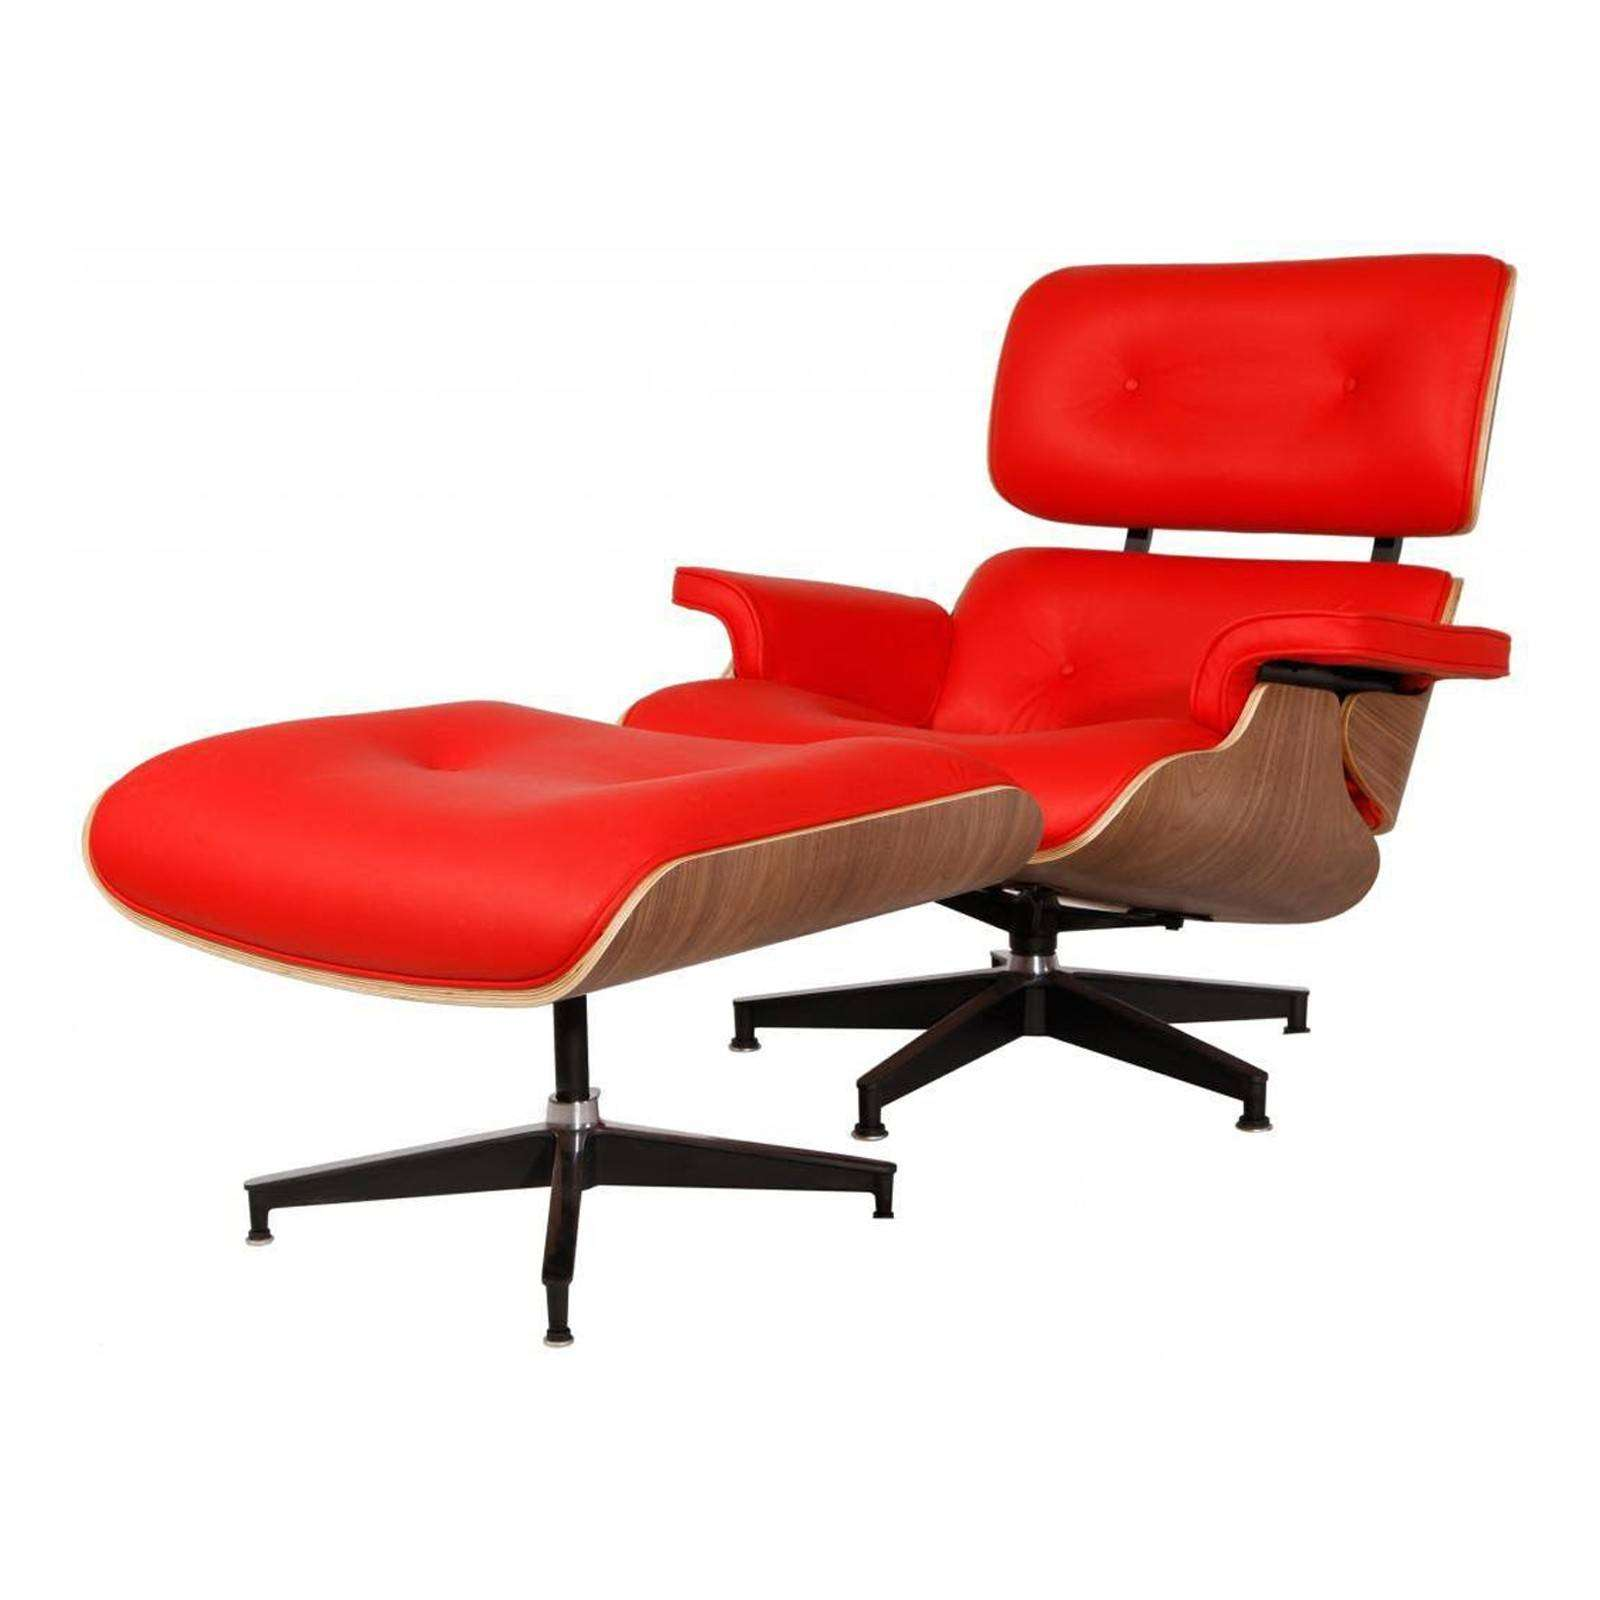 Enjoyable Eames Lounge Chair Ottoman Replica Modterior Usa Machost Co Dining Chair Design Ideas Machostcouk